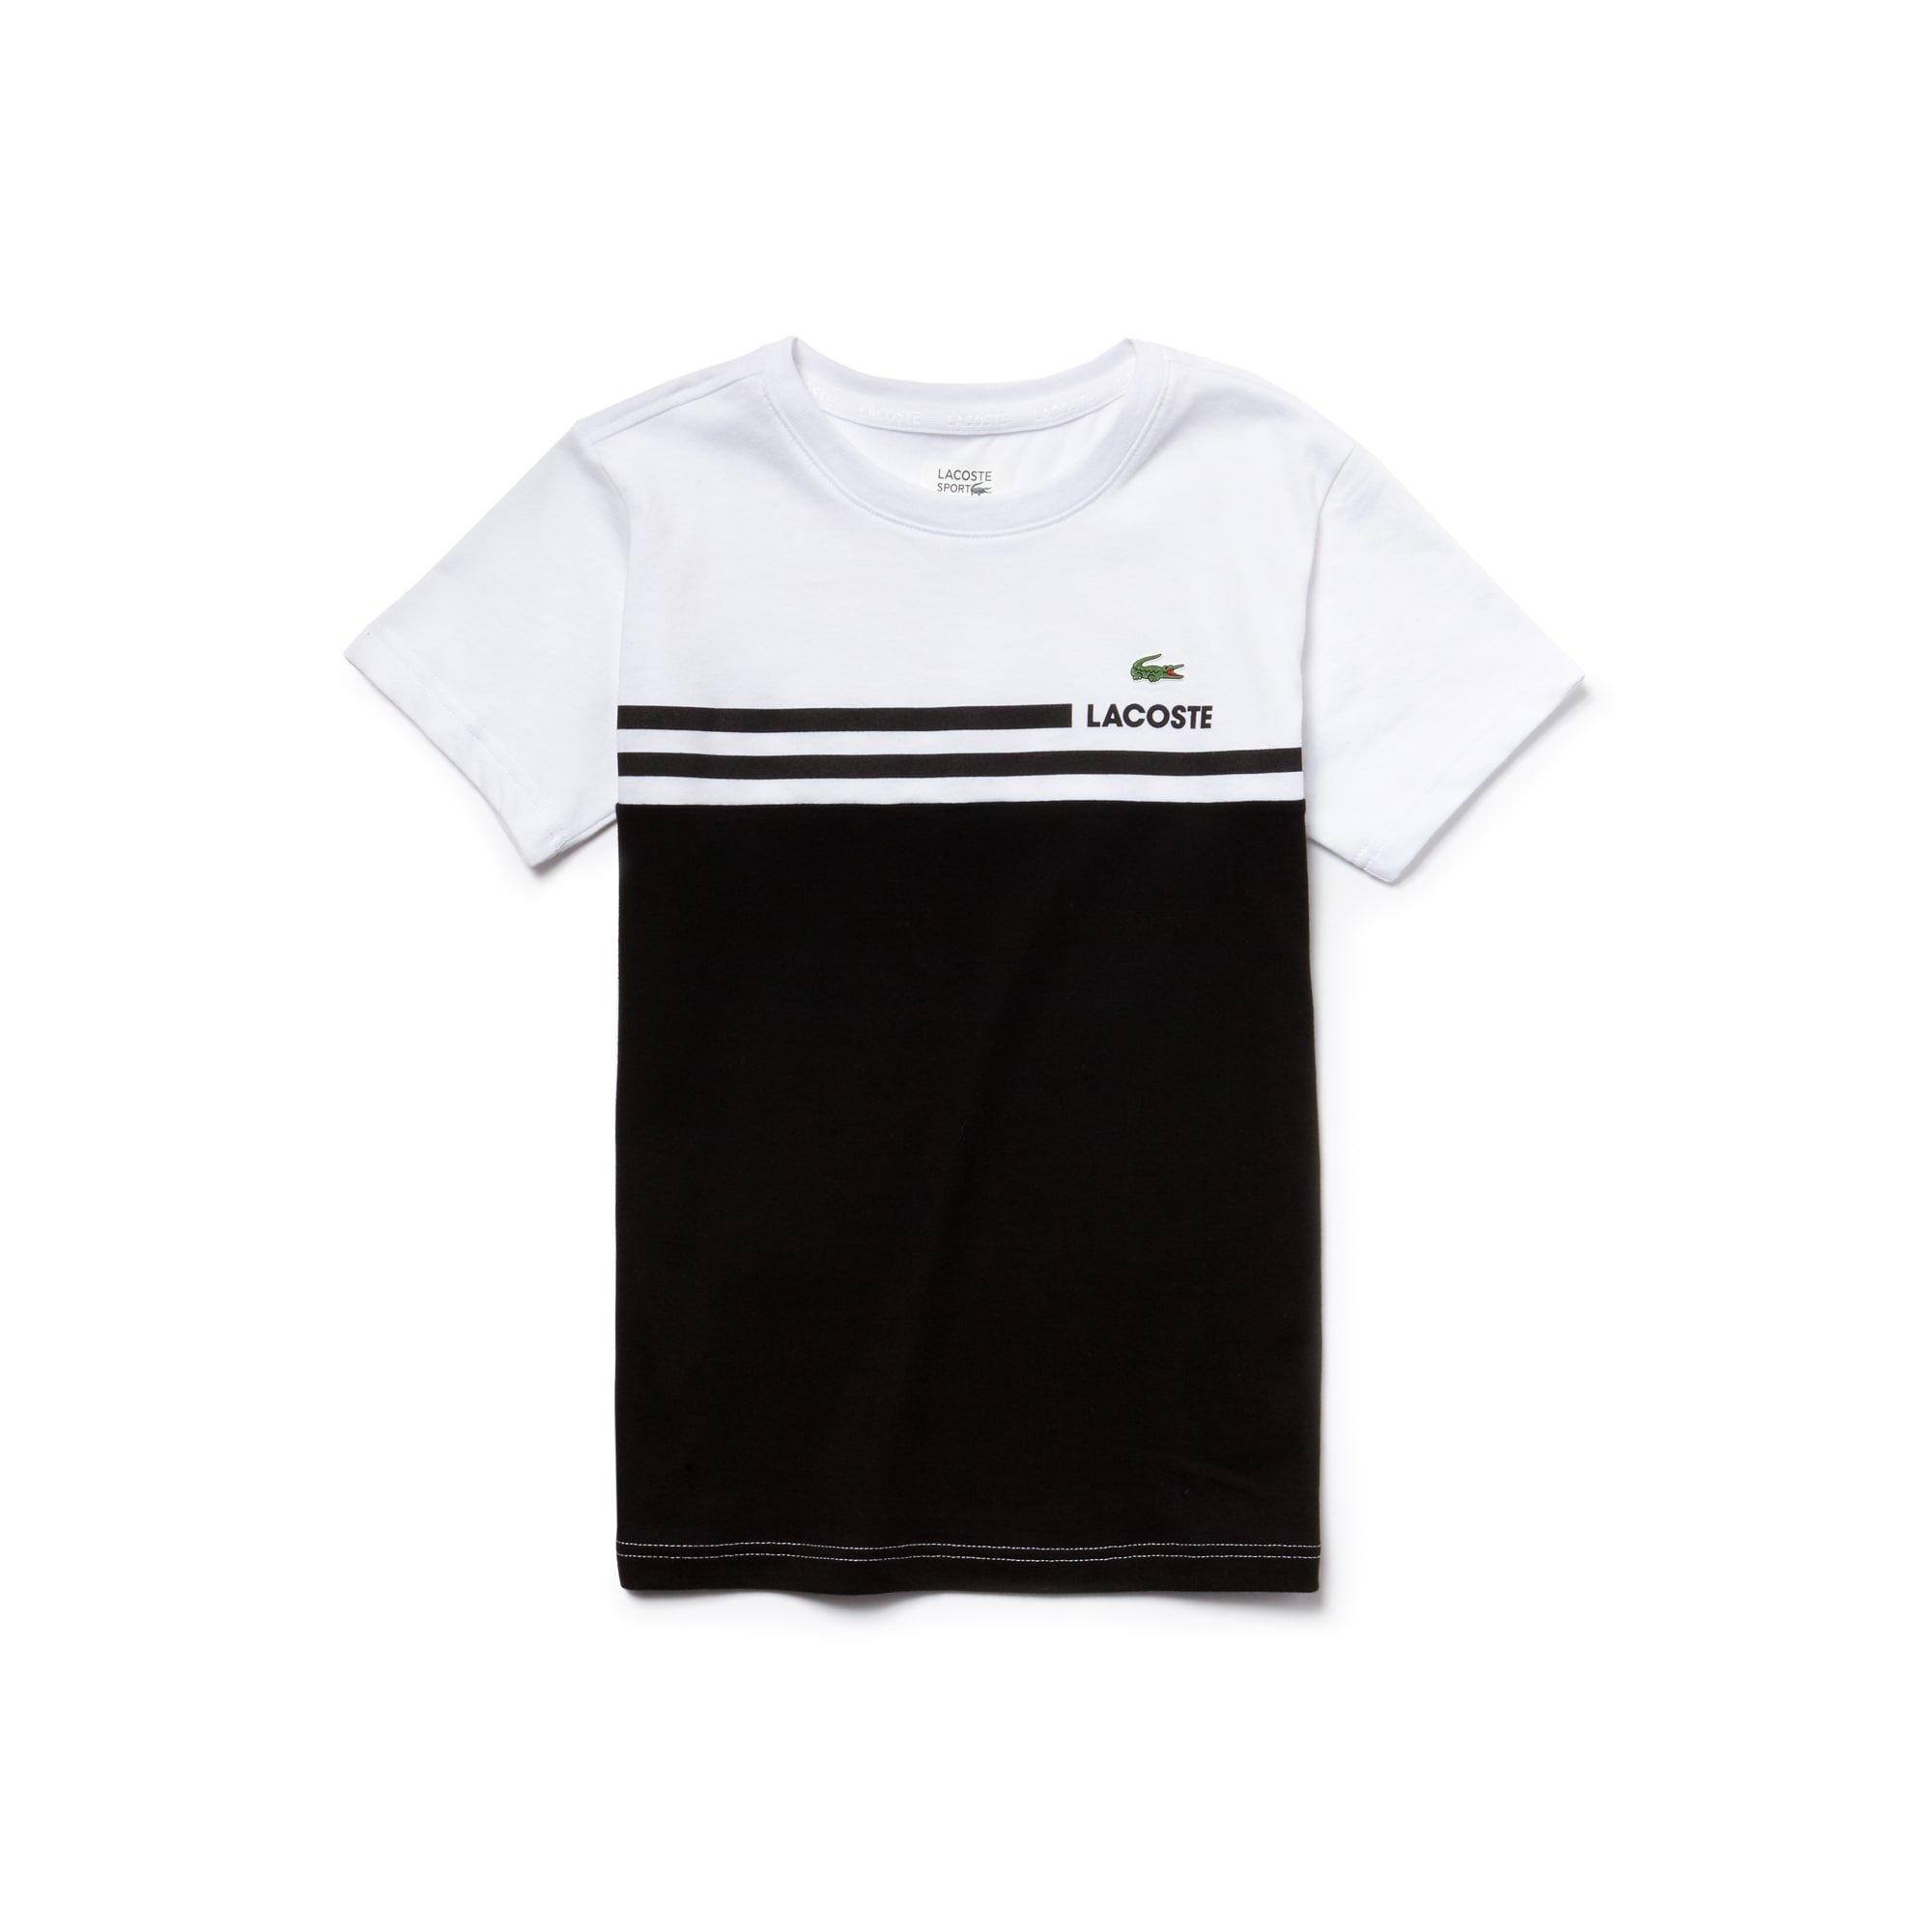 T-shirt Garçon Tennis Lacoste SPORT en jersey technique color block